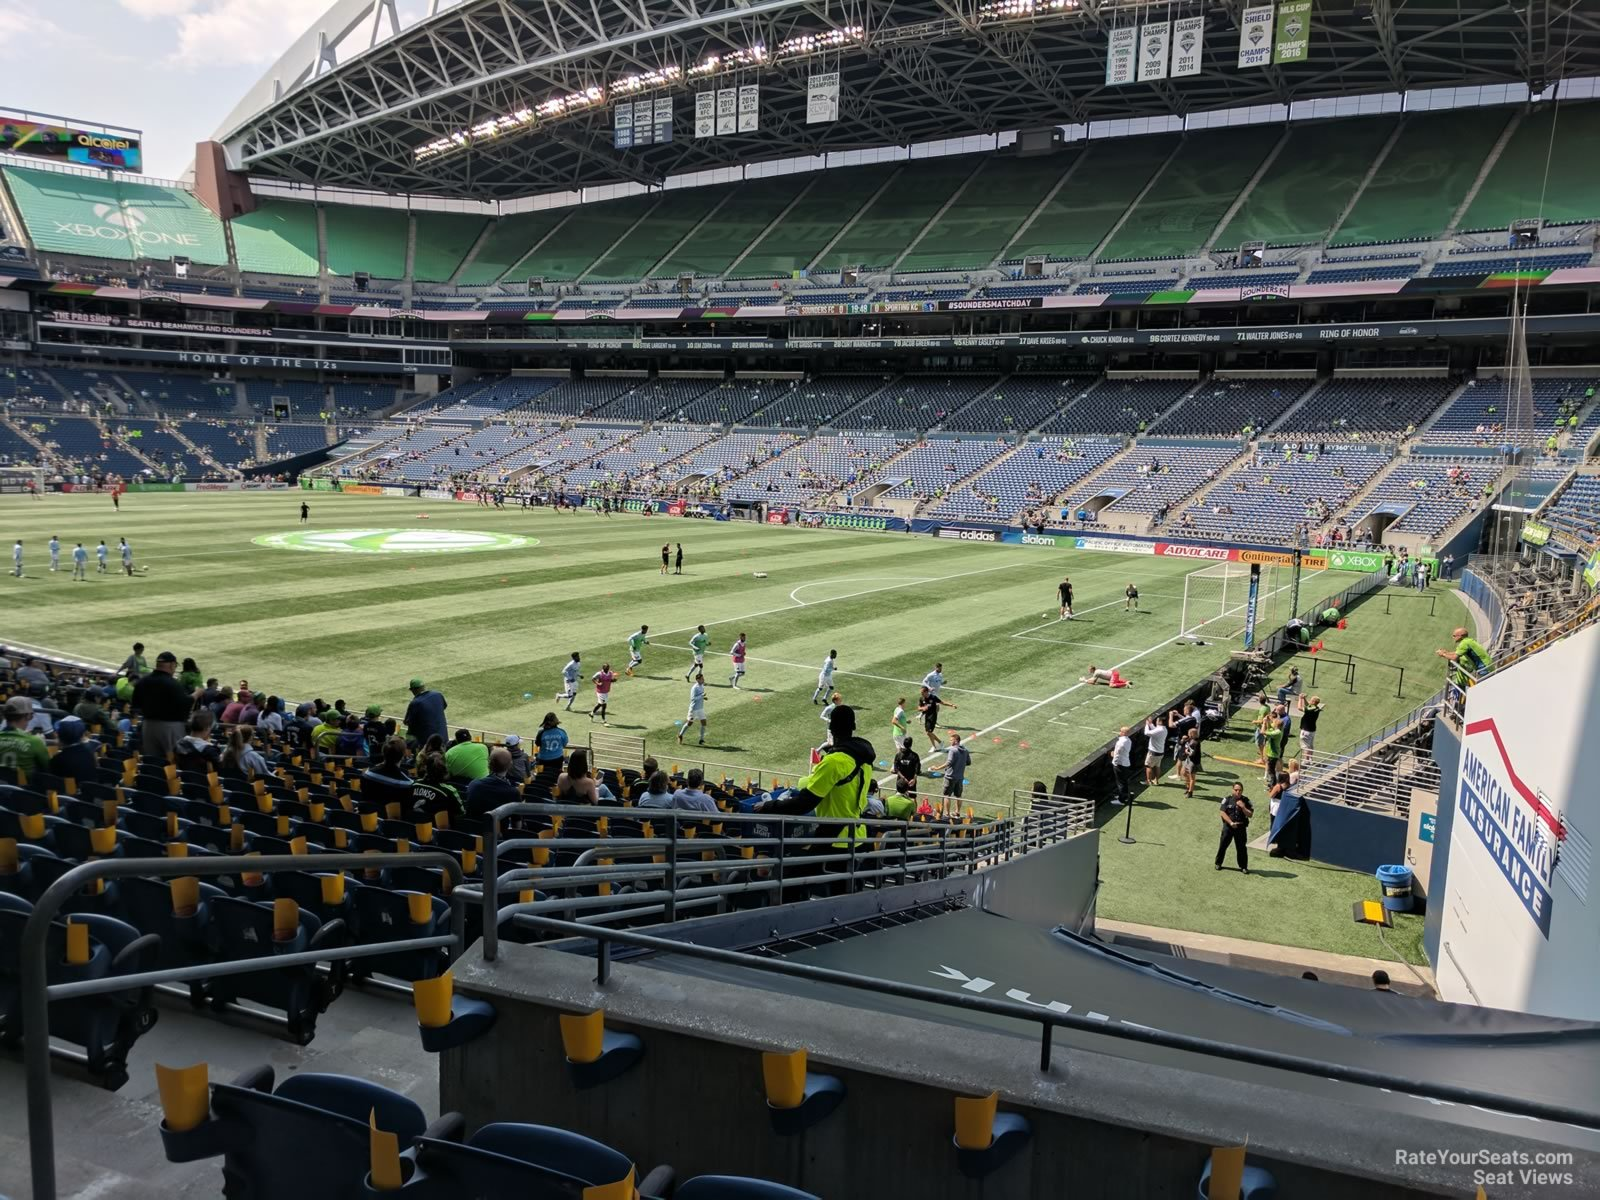 centurylink field seahawks 3d seating chart - Bamil